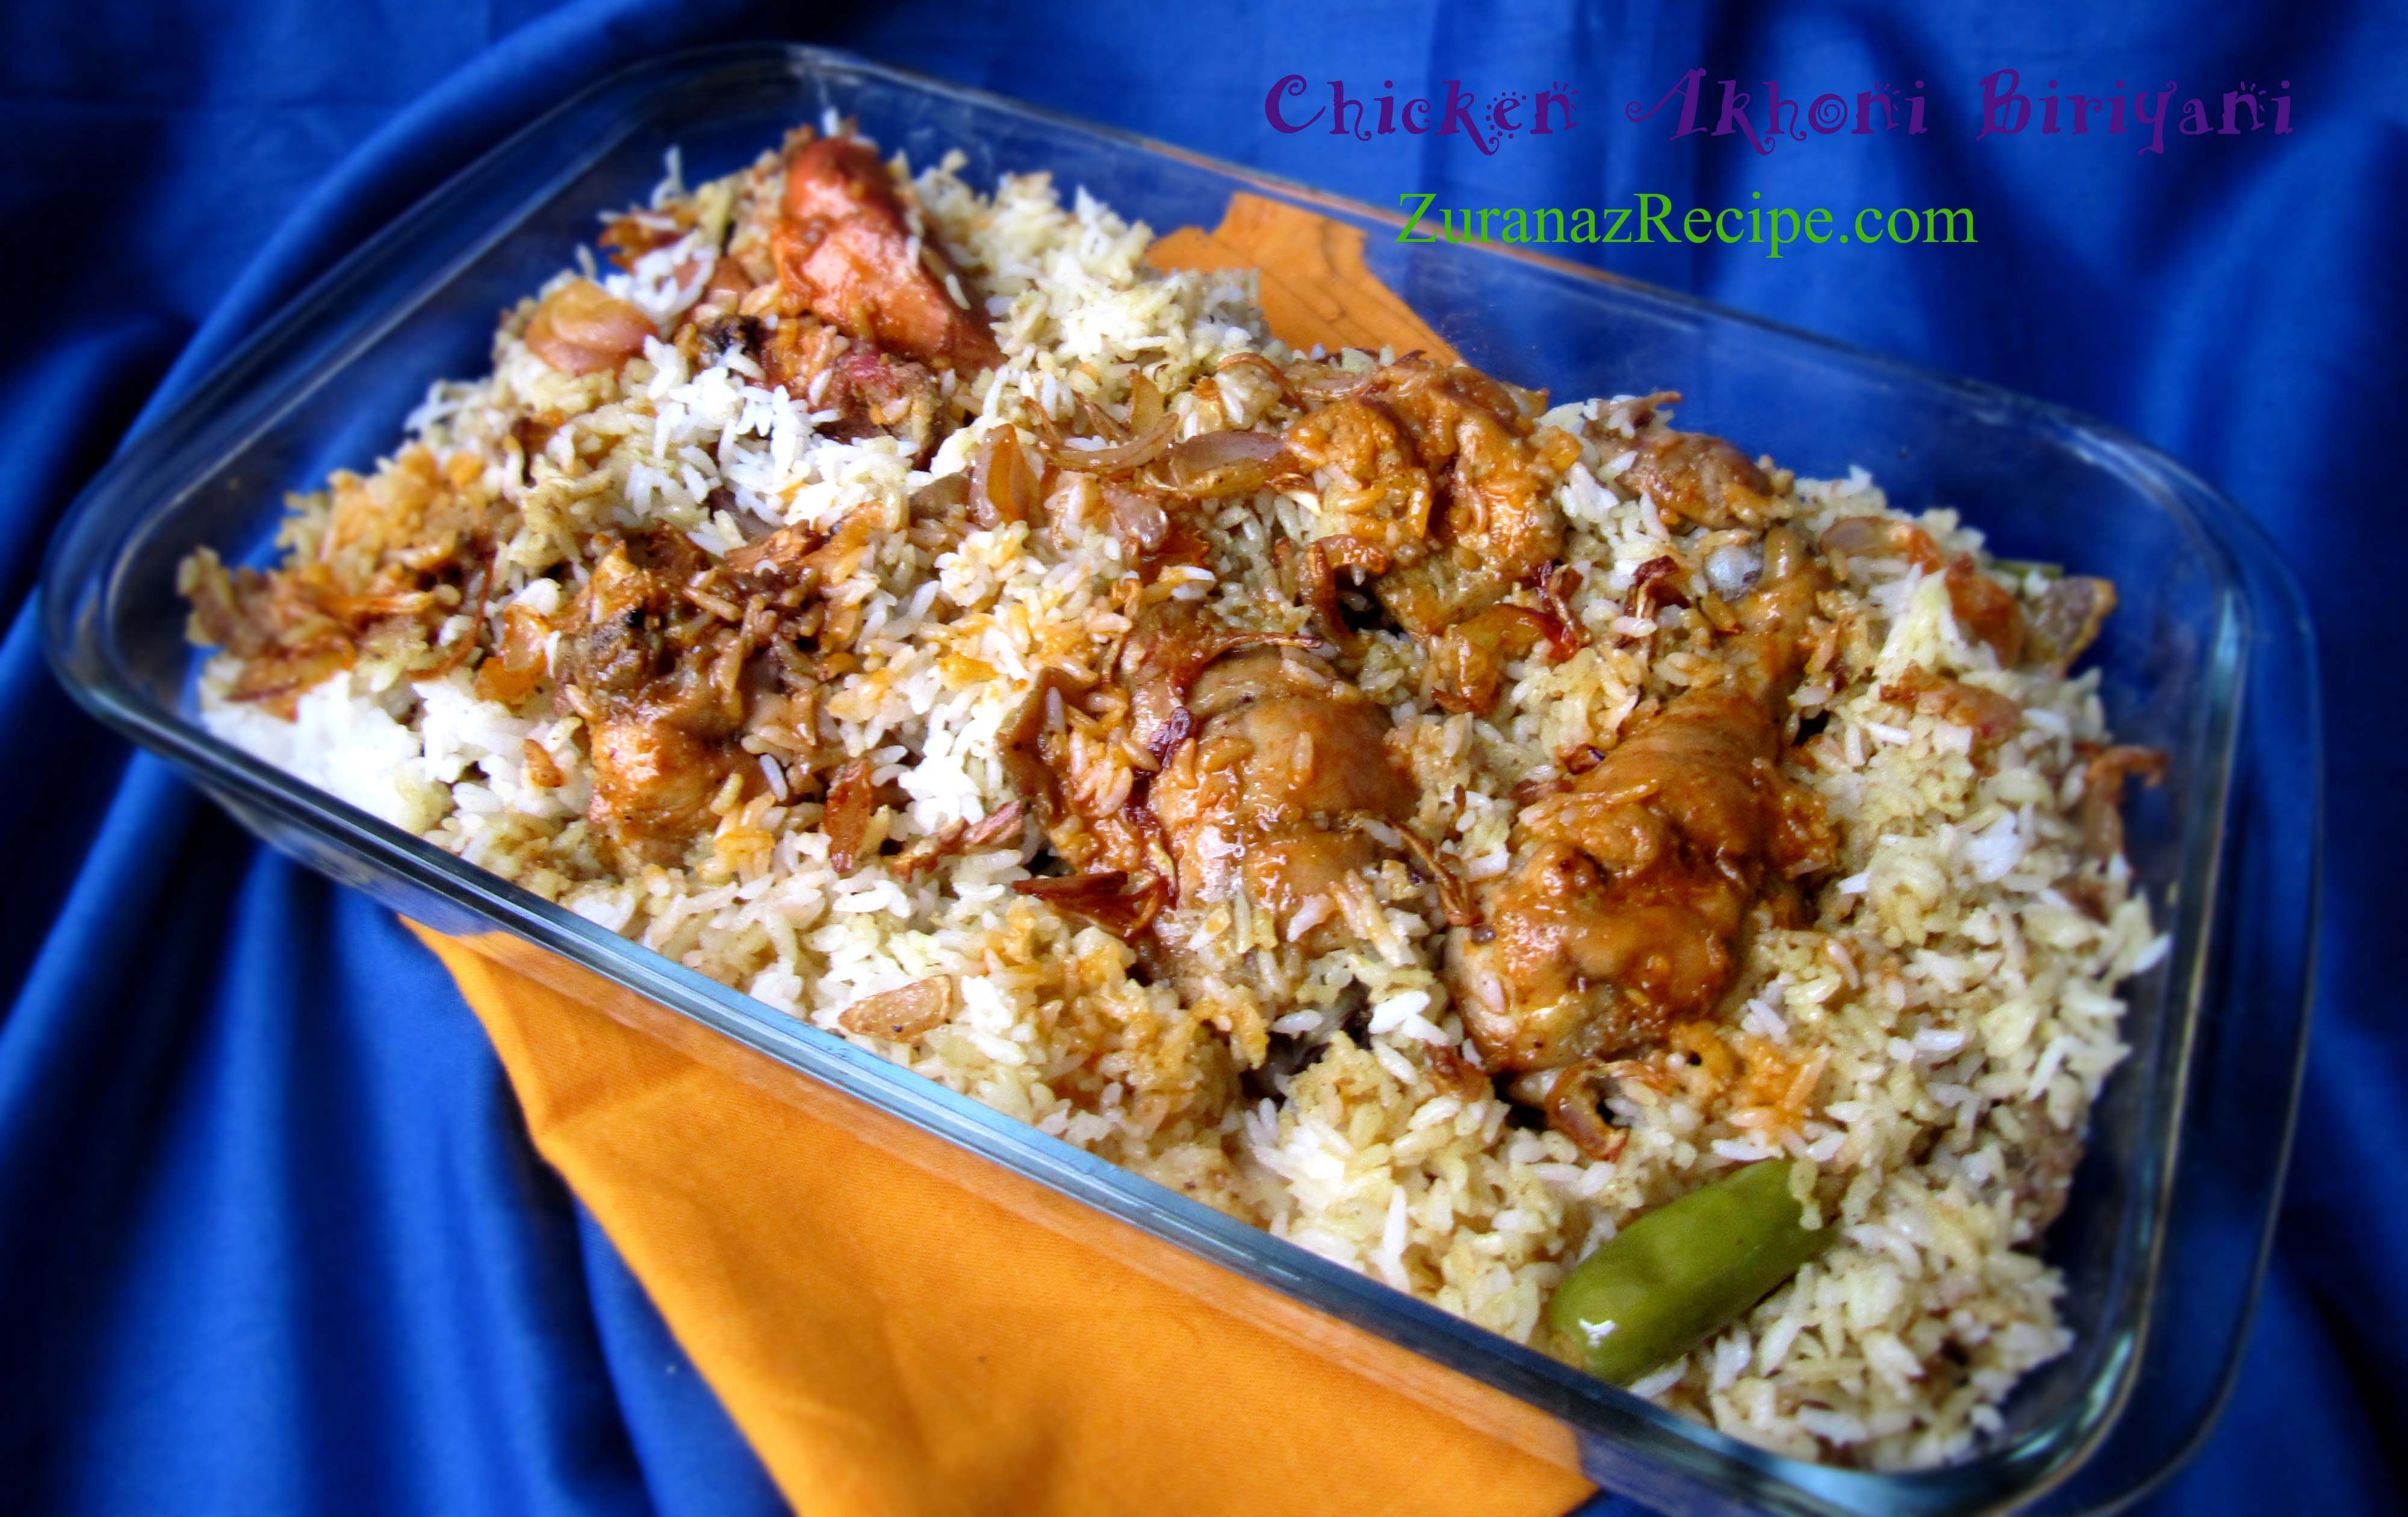 Chicken akhoni biriyani bangla recipes pinterest bengali food explore bangladeshi recipes bangladeshi food and more chicken akhoni biriyani forumfinder Choice Image